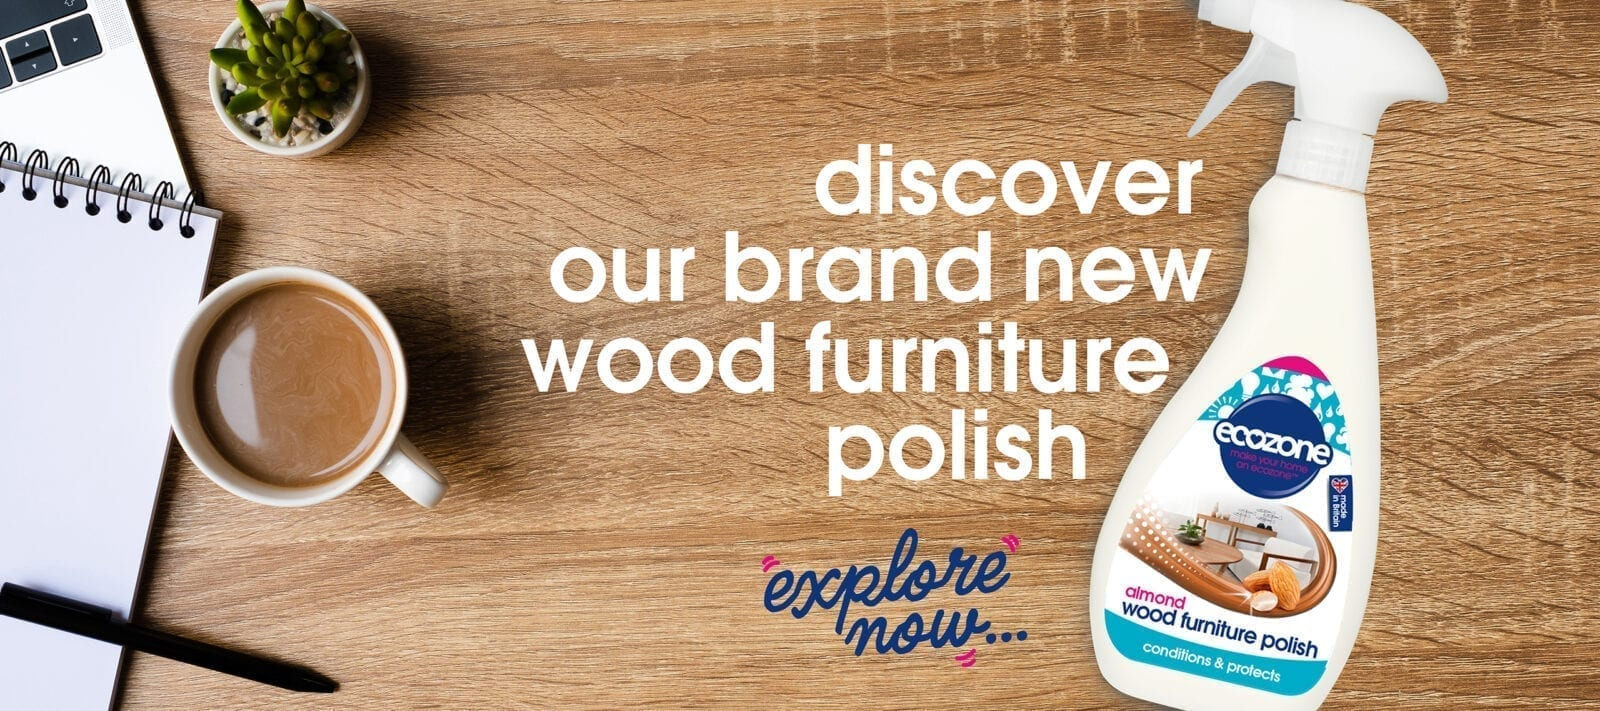 Ecozone wood polish